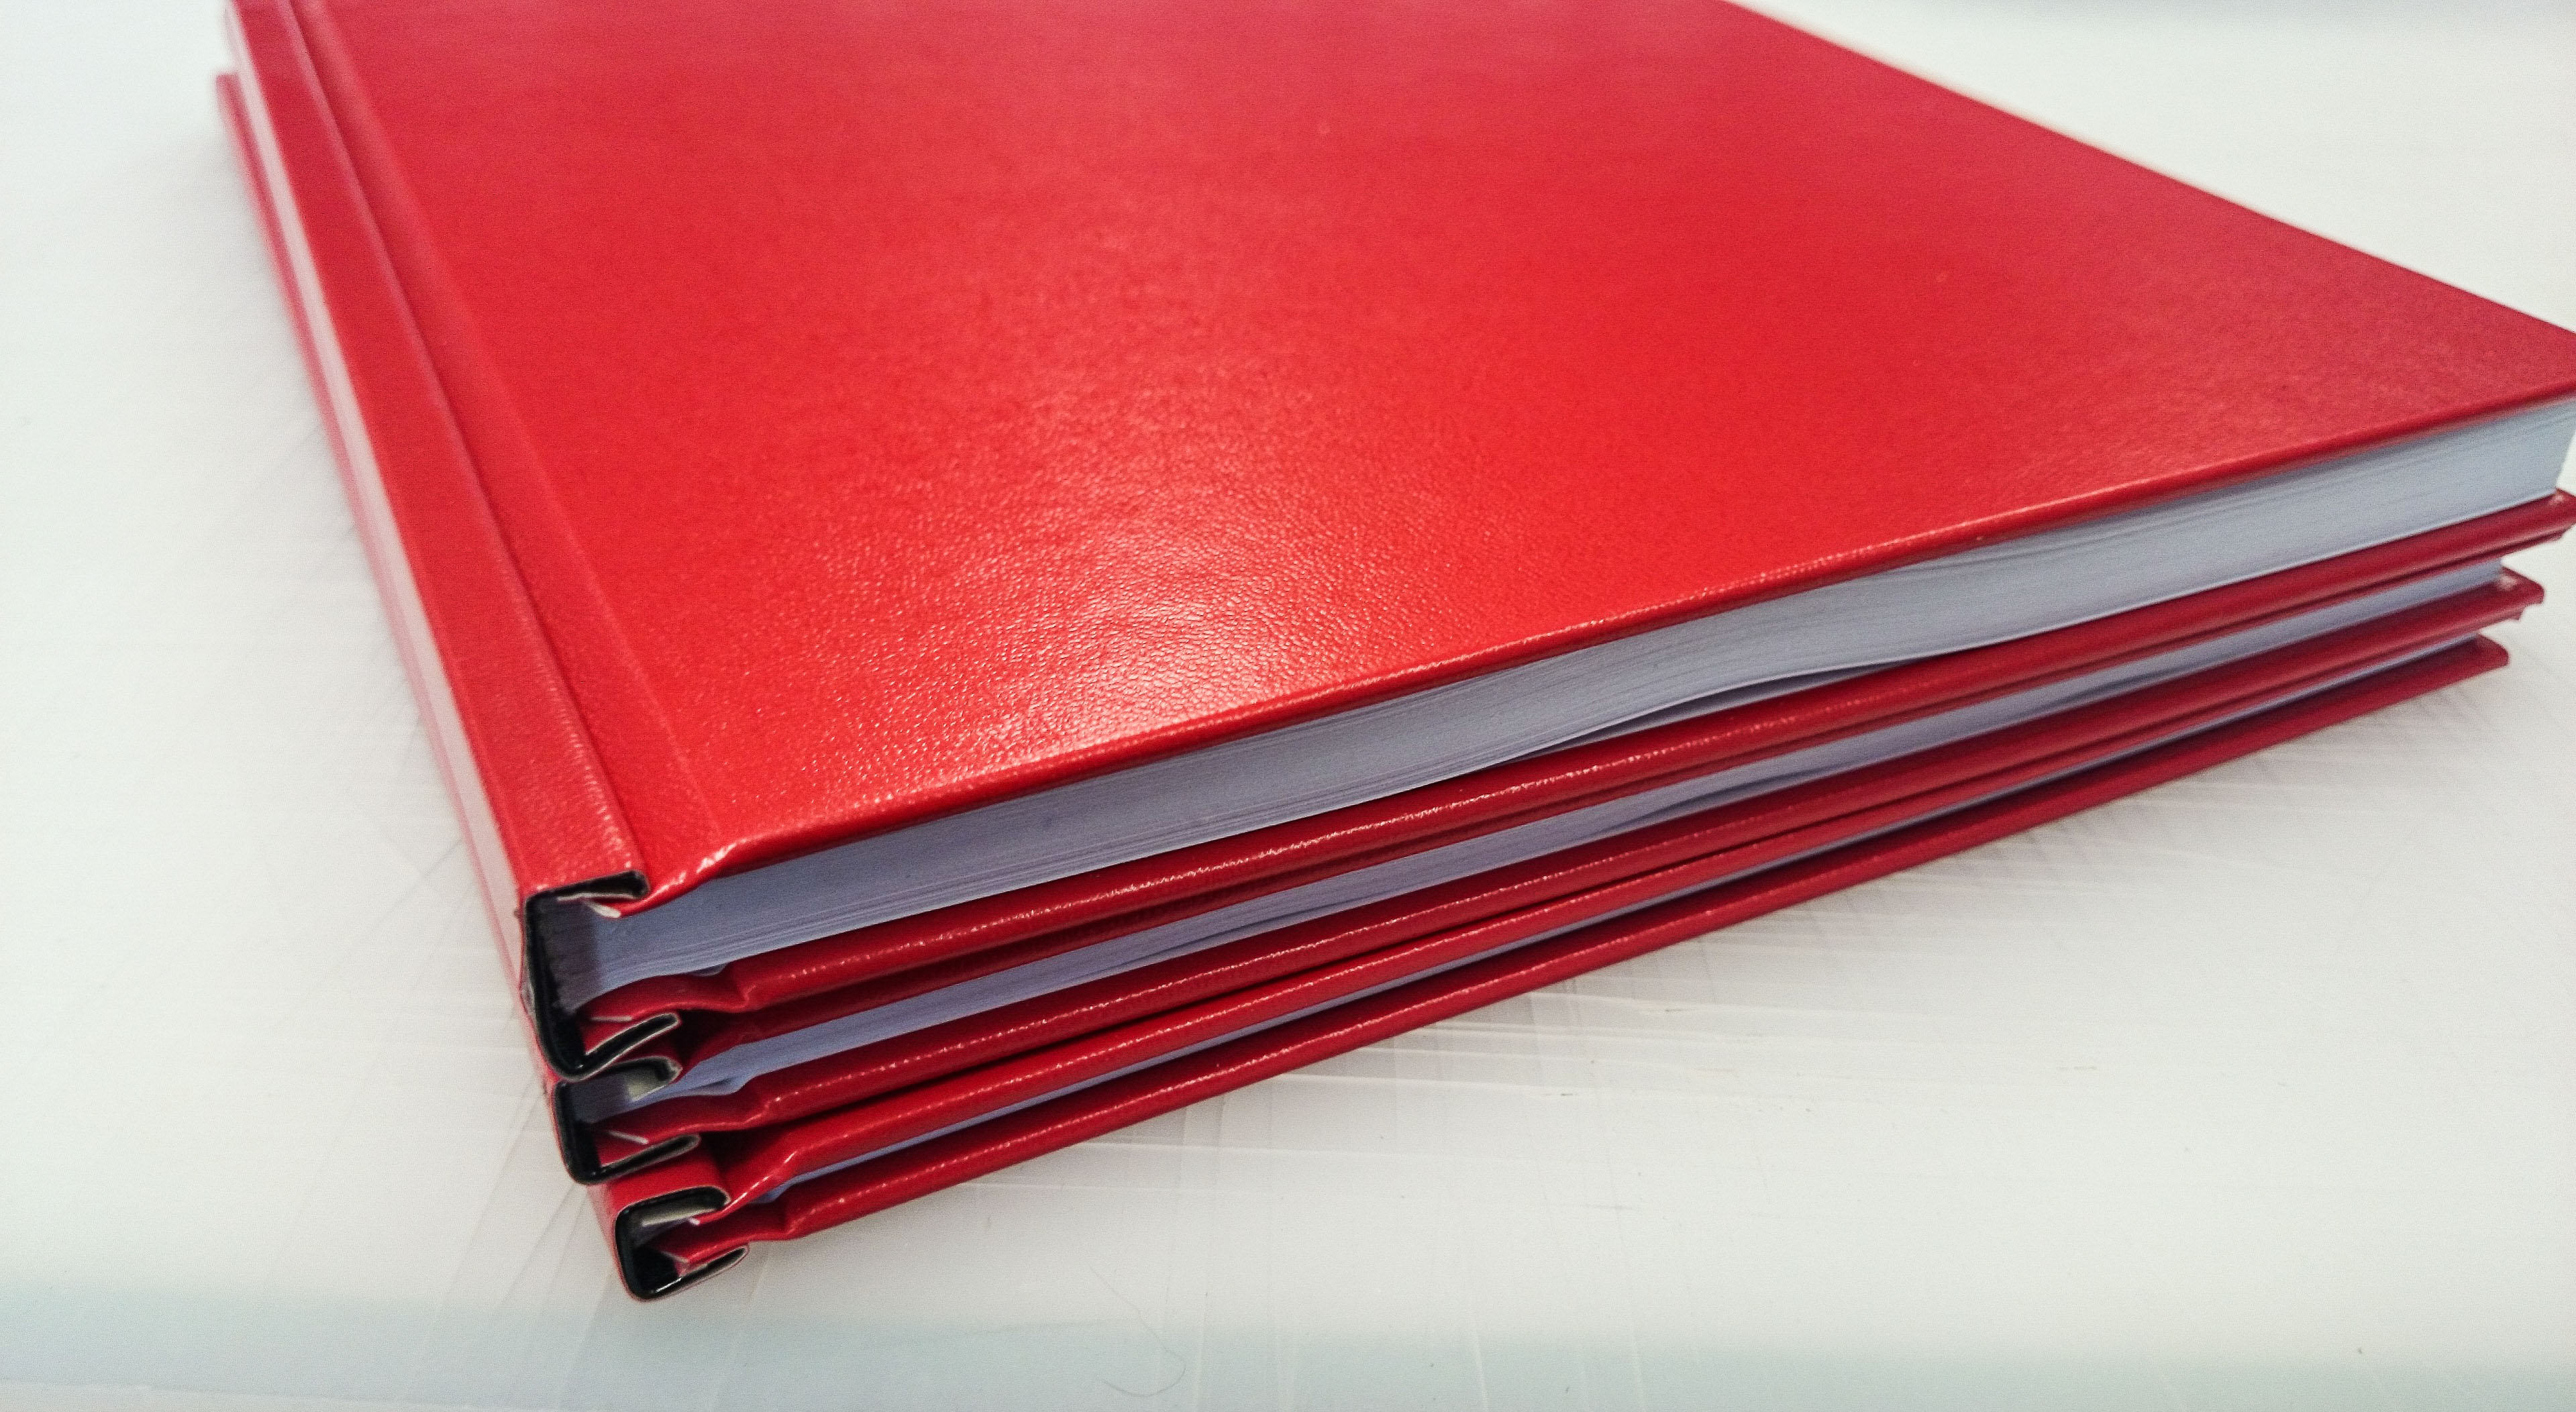 red hard cover